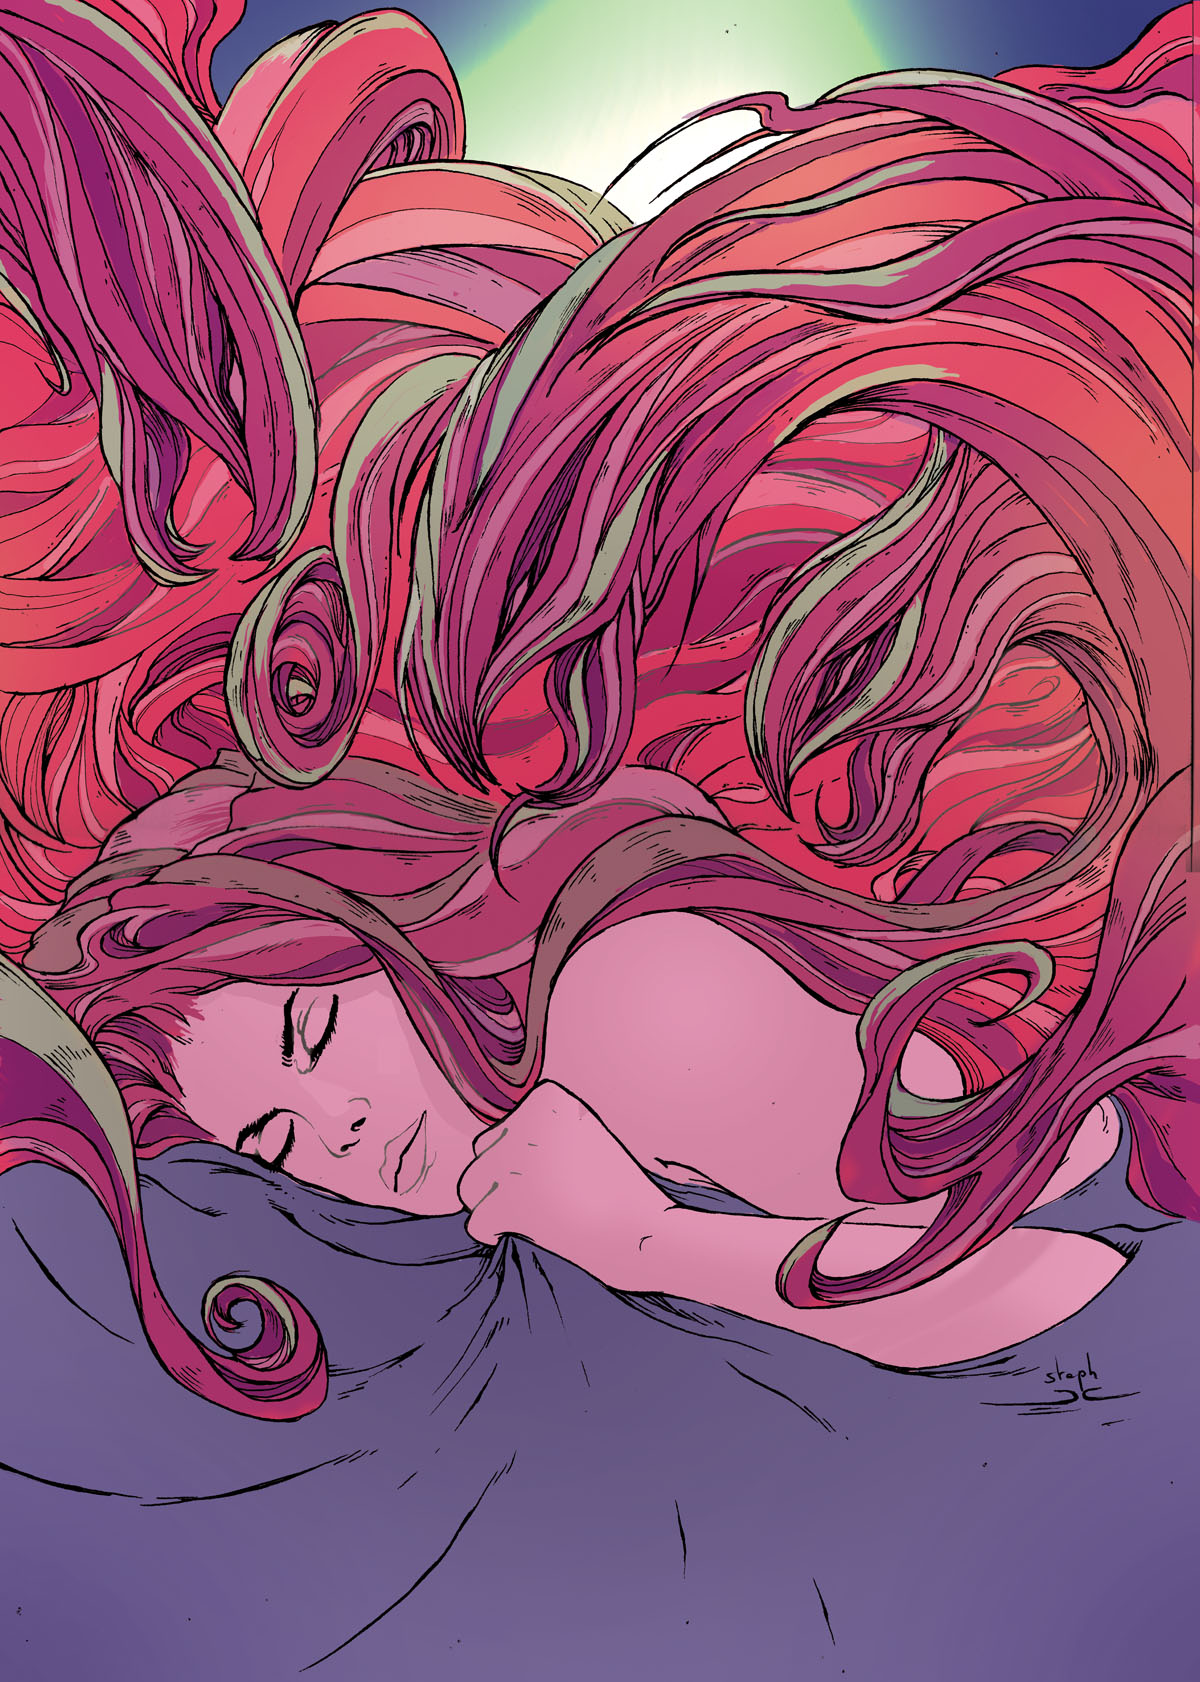 medusa_is_dreaming_by_abc142-dapgwpq